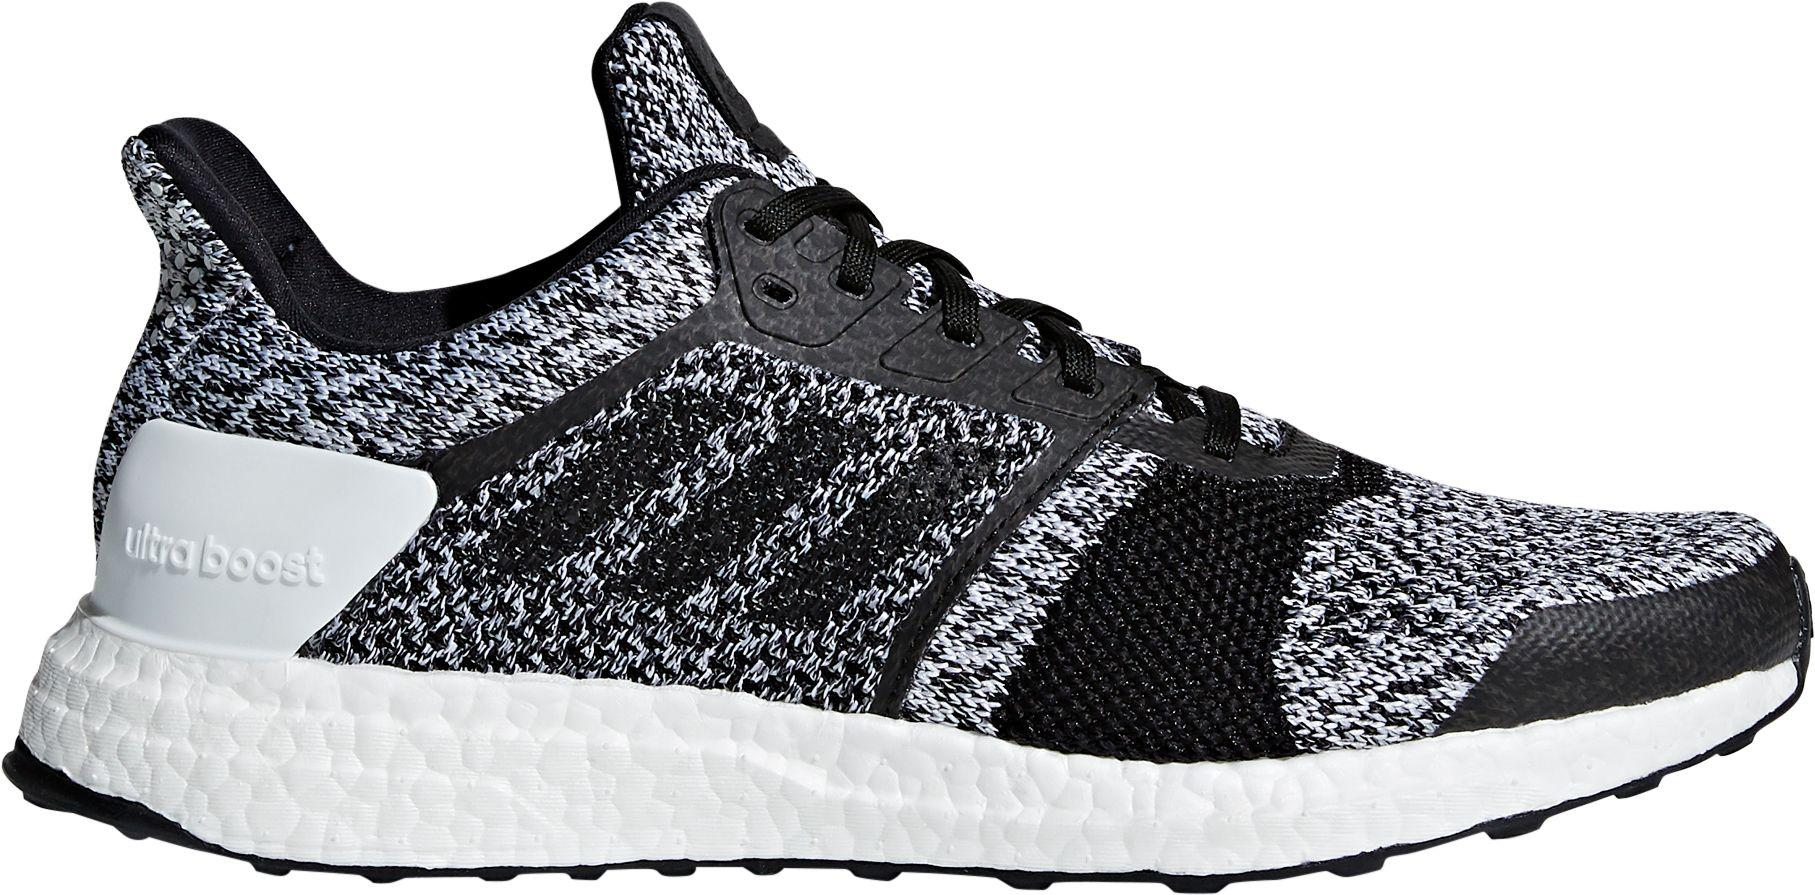 650eaec47 Lyst - adidas Ultraboost St Running Shoes in Black for Men